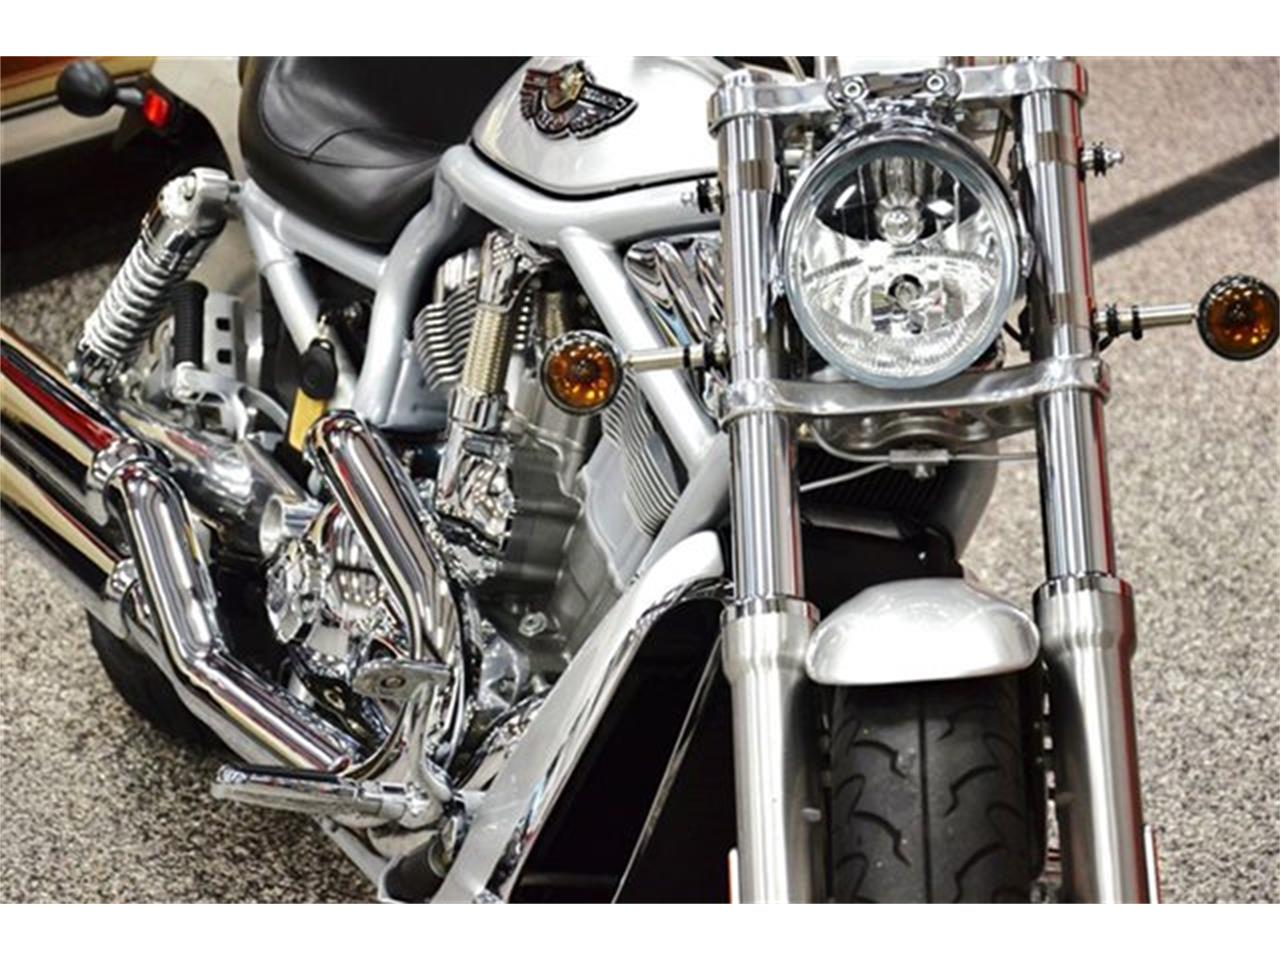 2003 Harley-Davidson VRSC for sale in Plainfield, IL – photo 46